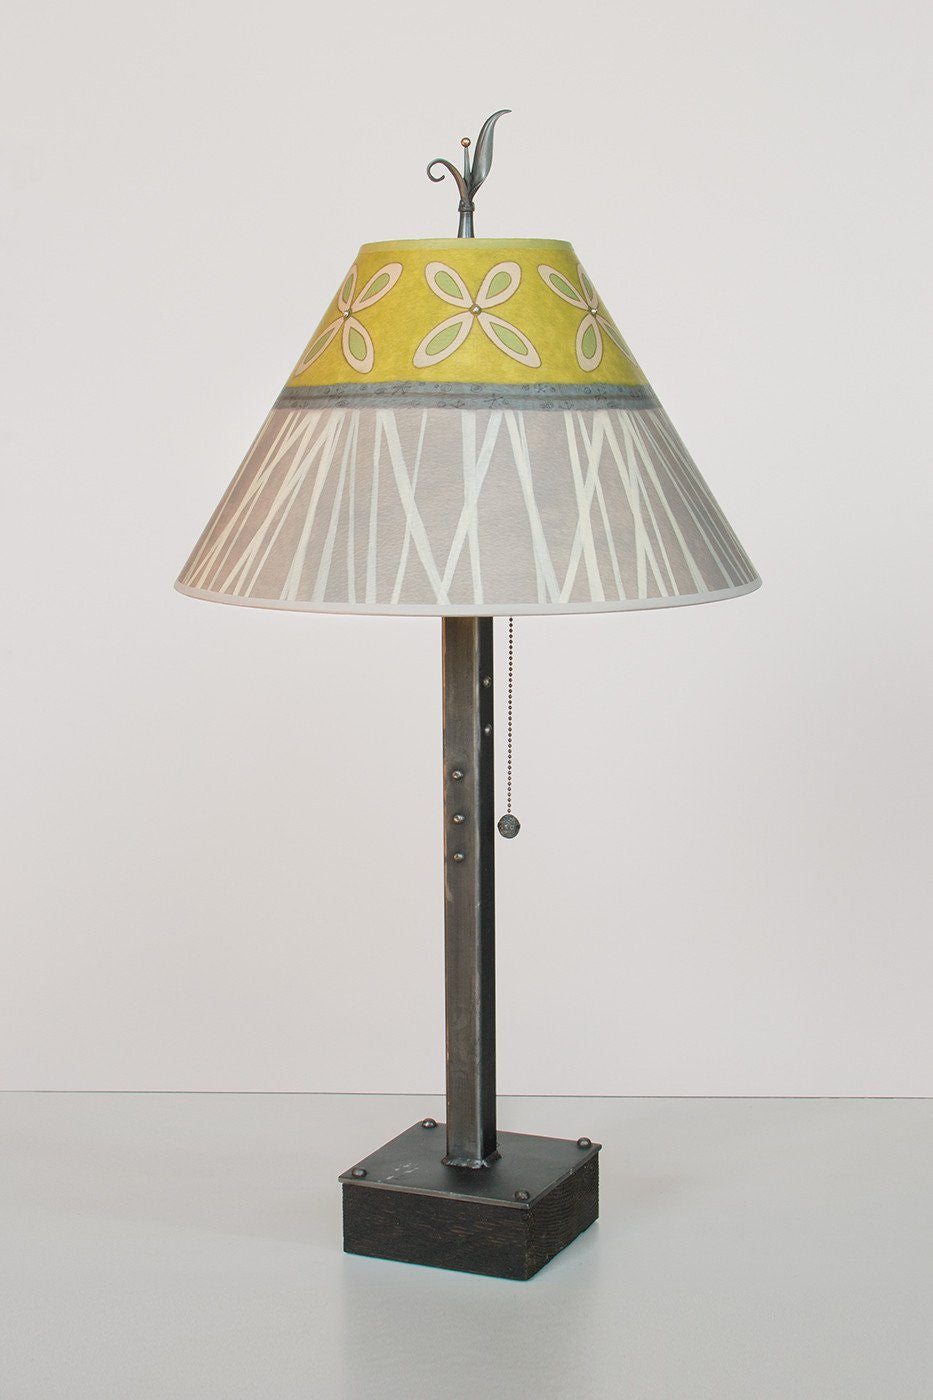 Steel Table Lamp on Wood with Medium Conical Shade in Kiwi - Lit